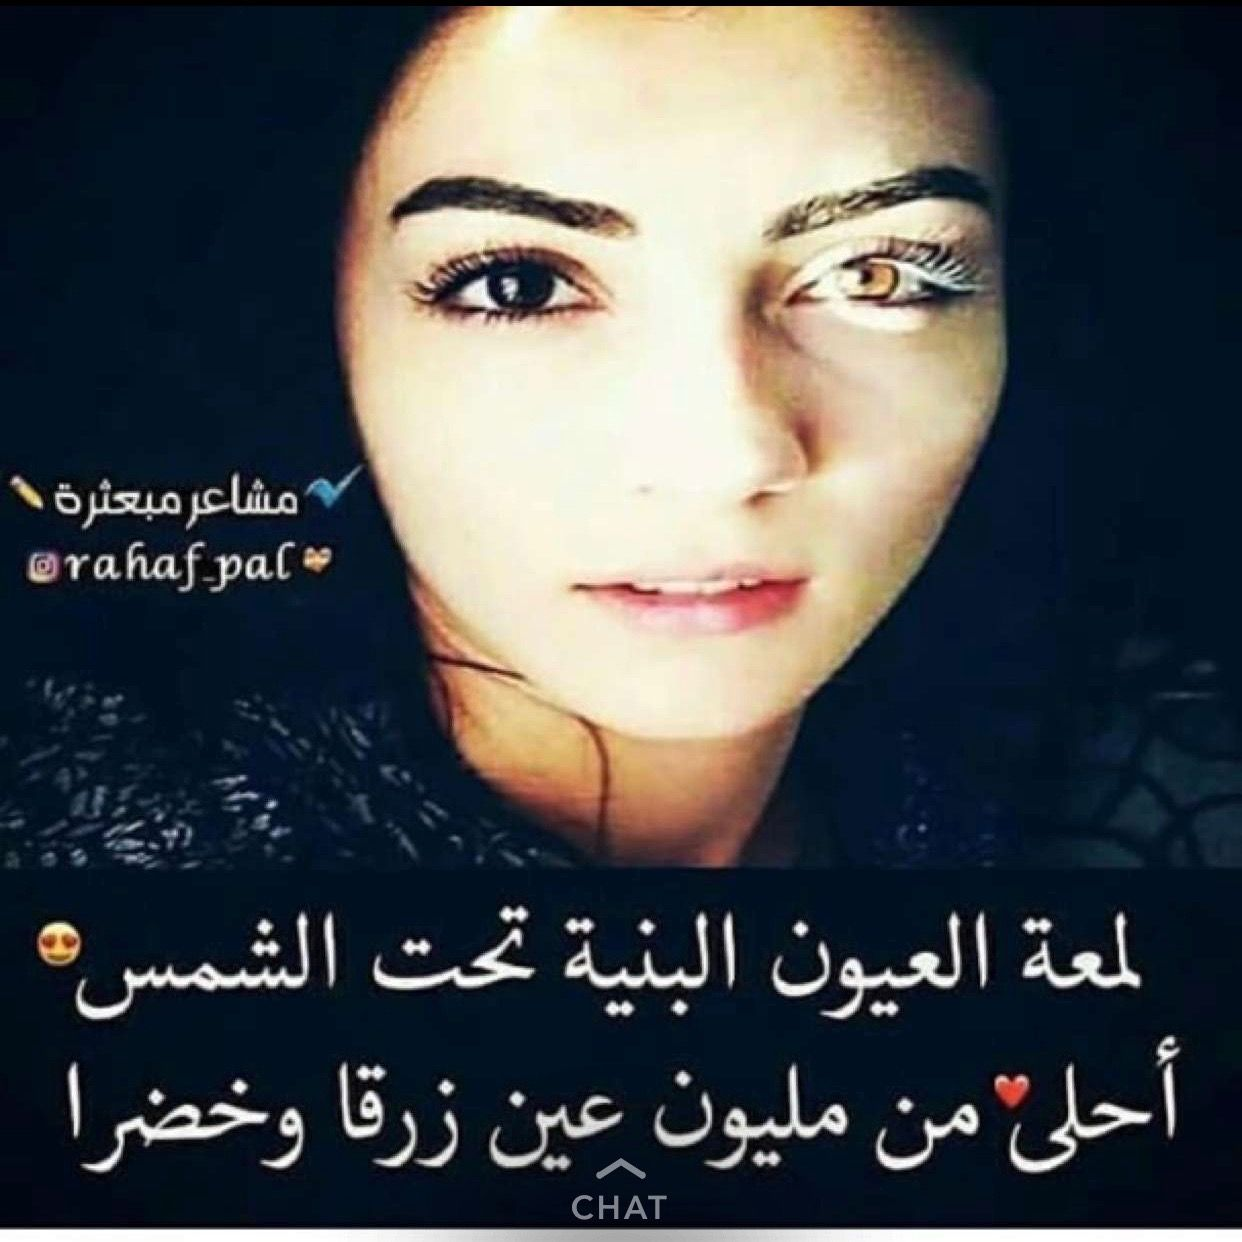 Pin By Ran Mory On Arabic Quotes Arabic Quotes Love Words Quotes